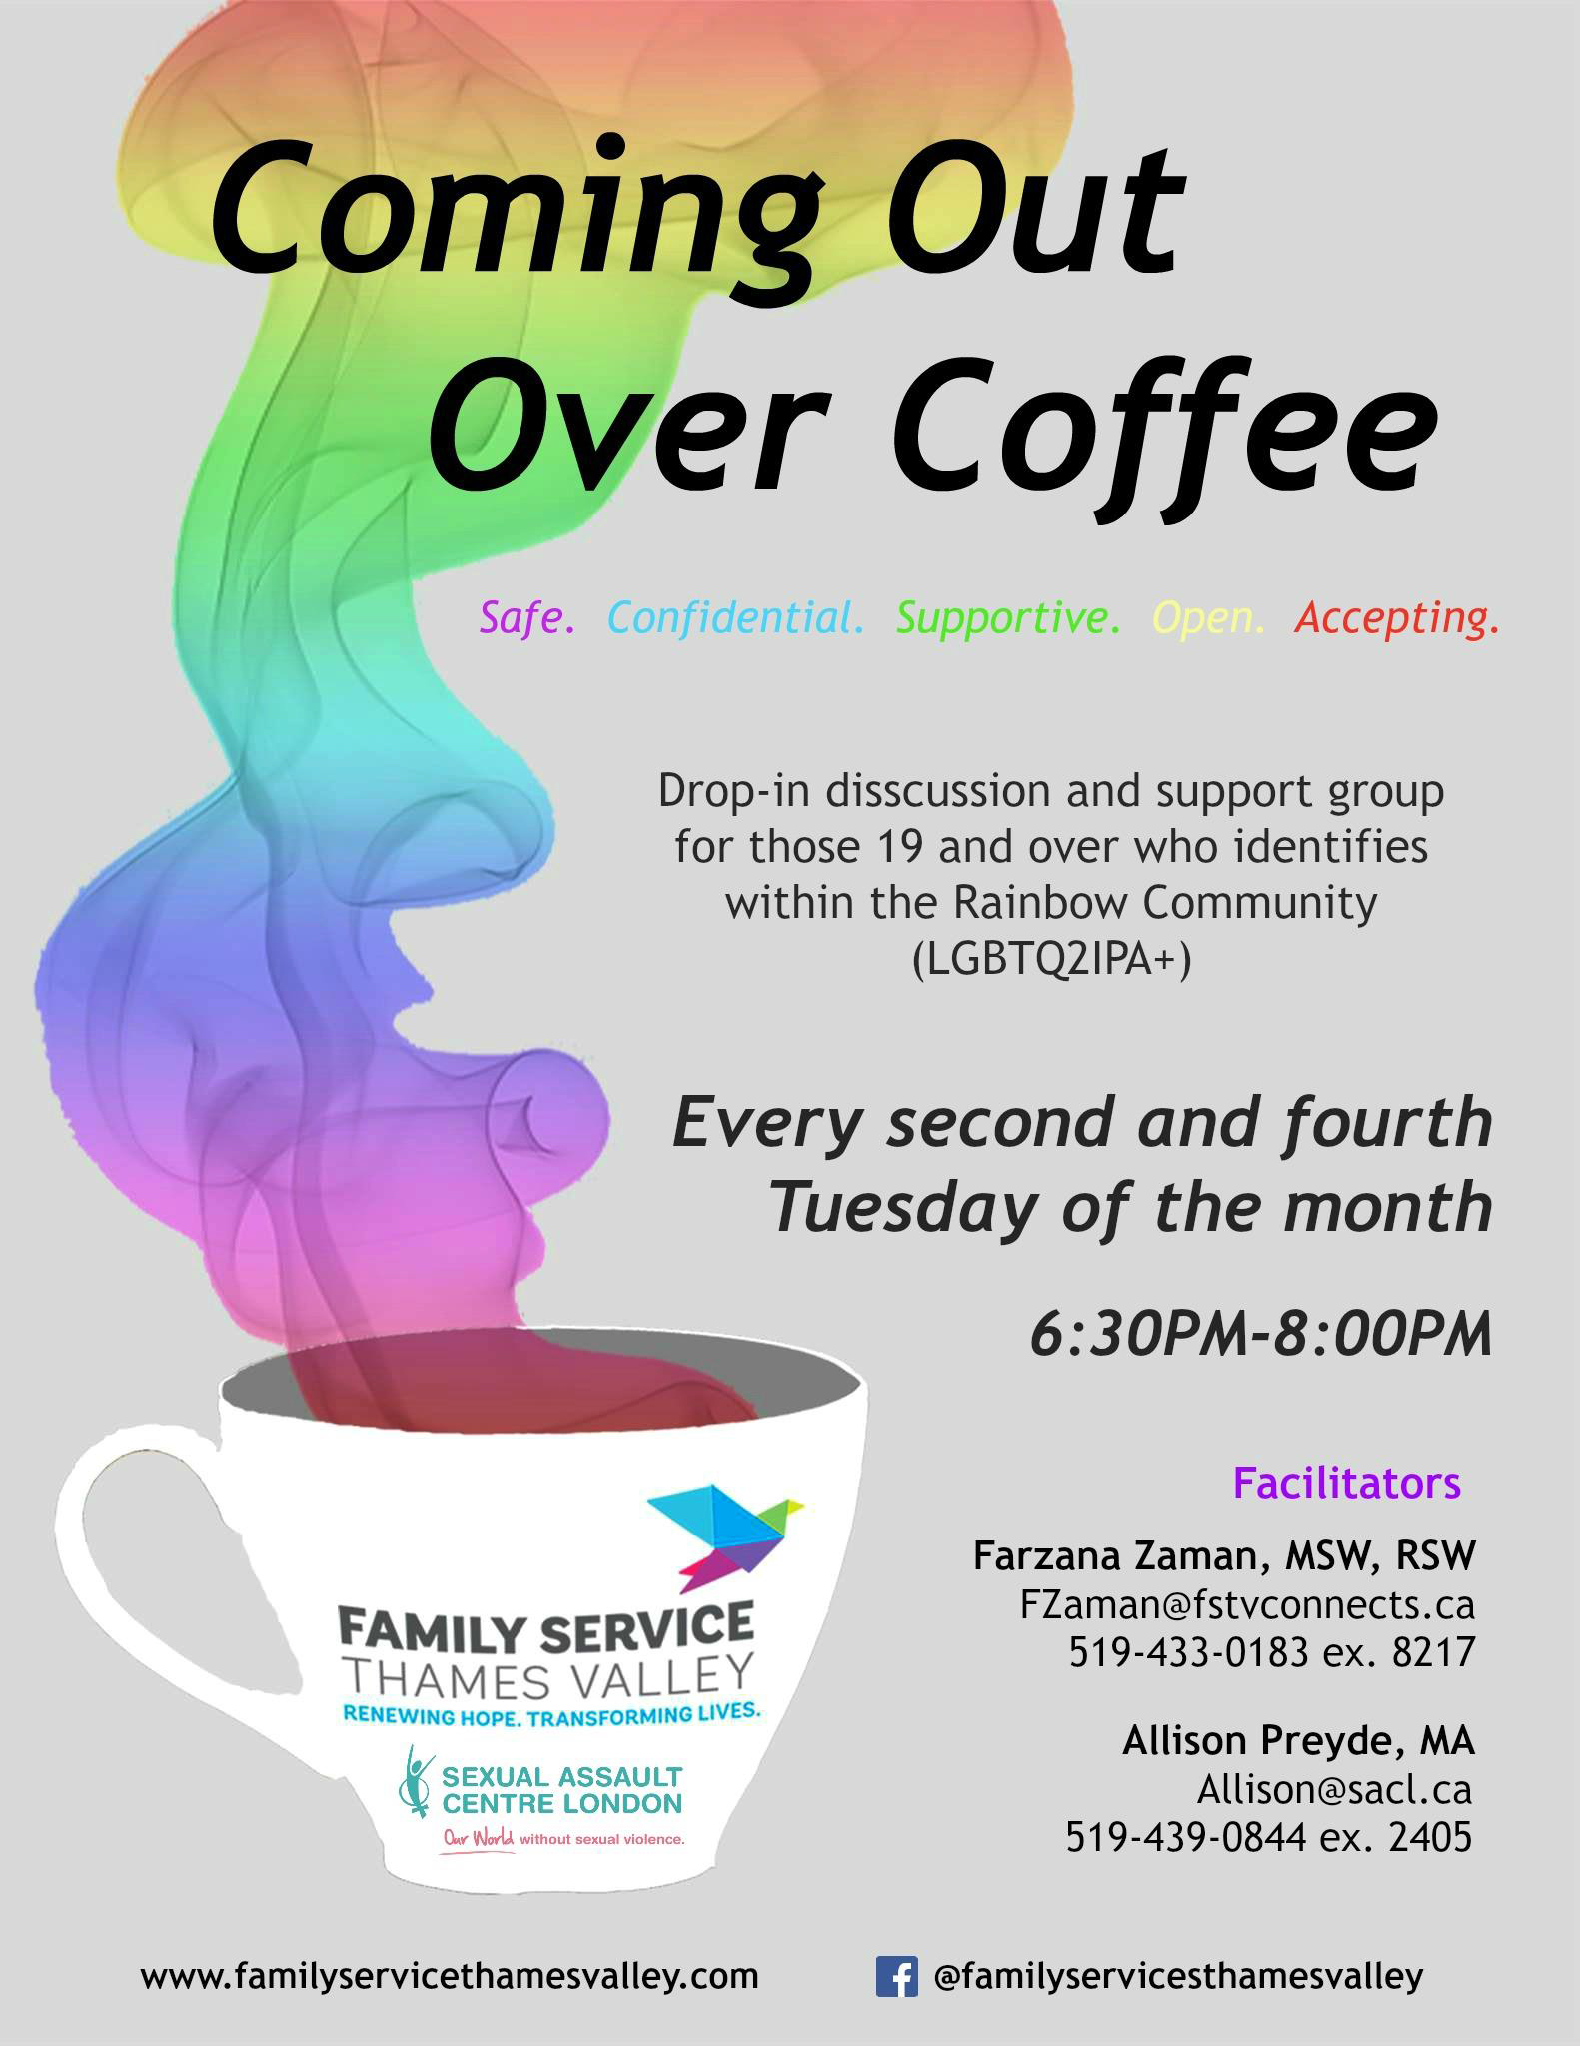 QueerEvents.ca - Coming Out Over Coffee Poster